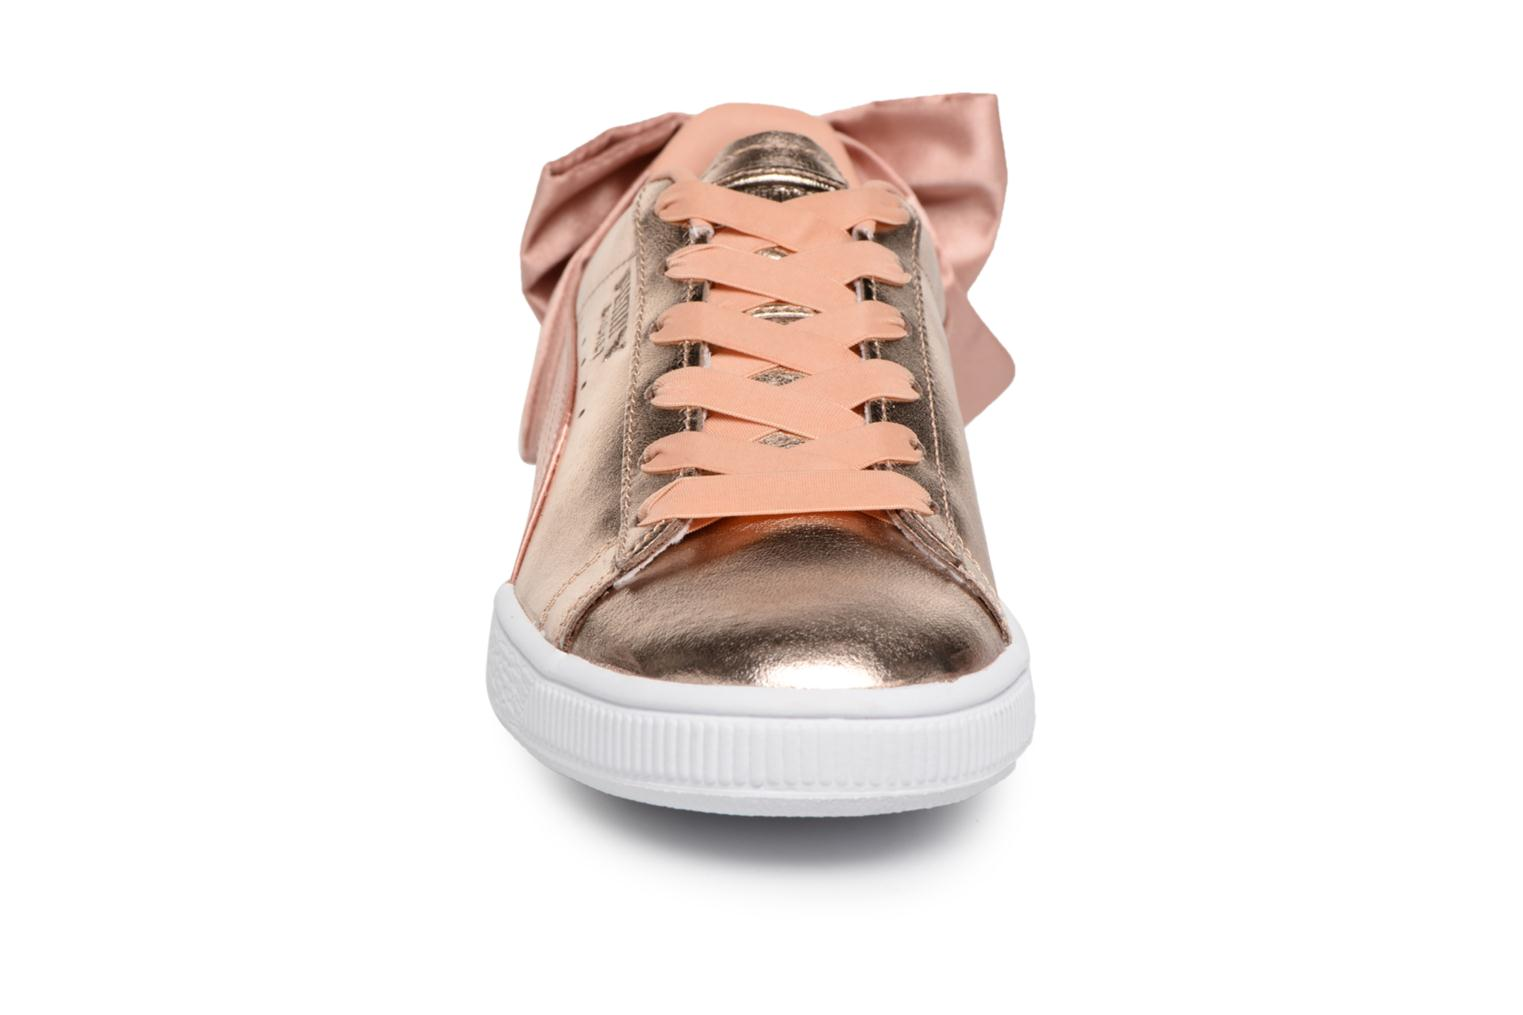 Lux White Basket Coral Dusty Bow Puma puma vExqAx